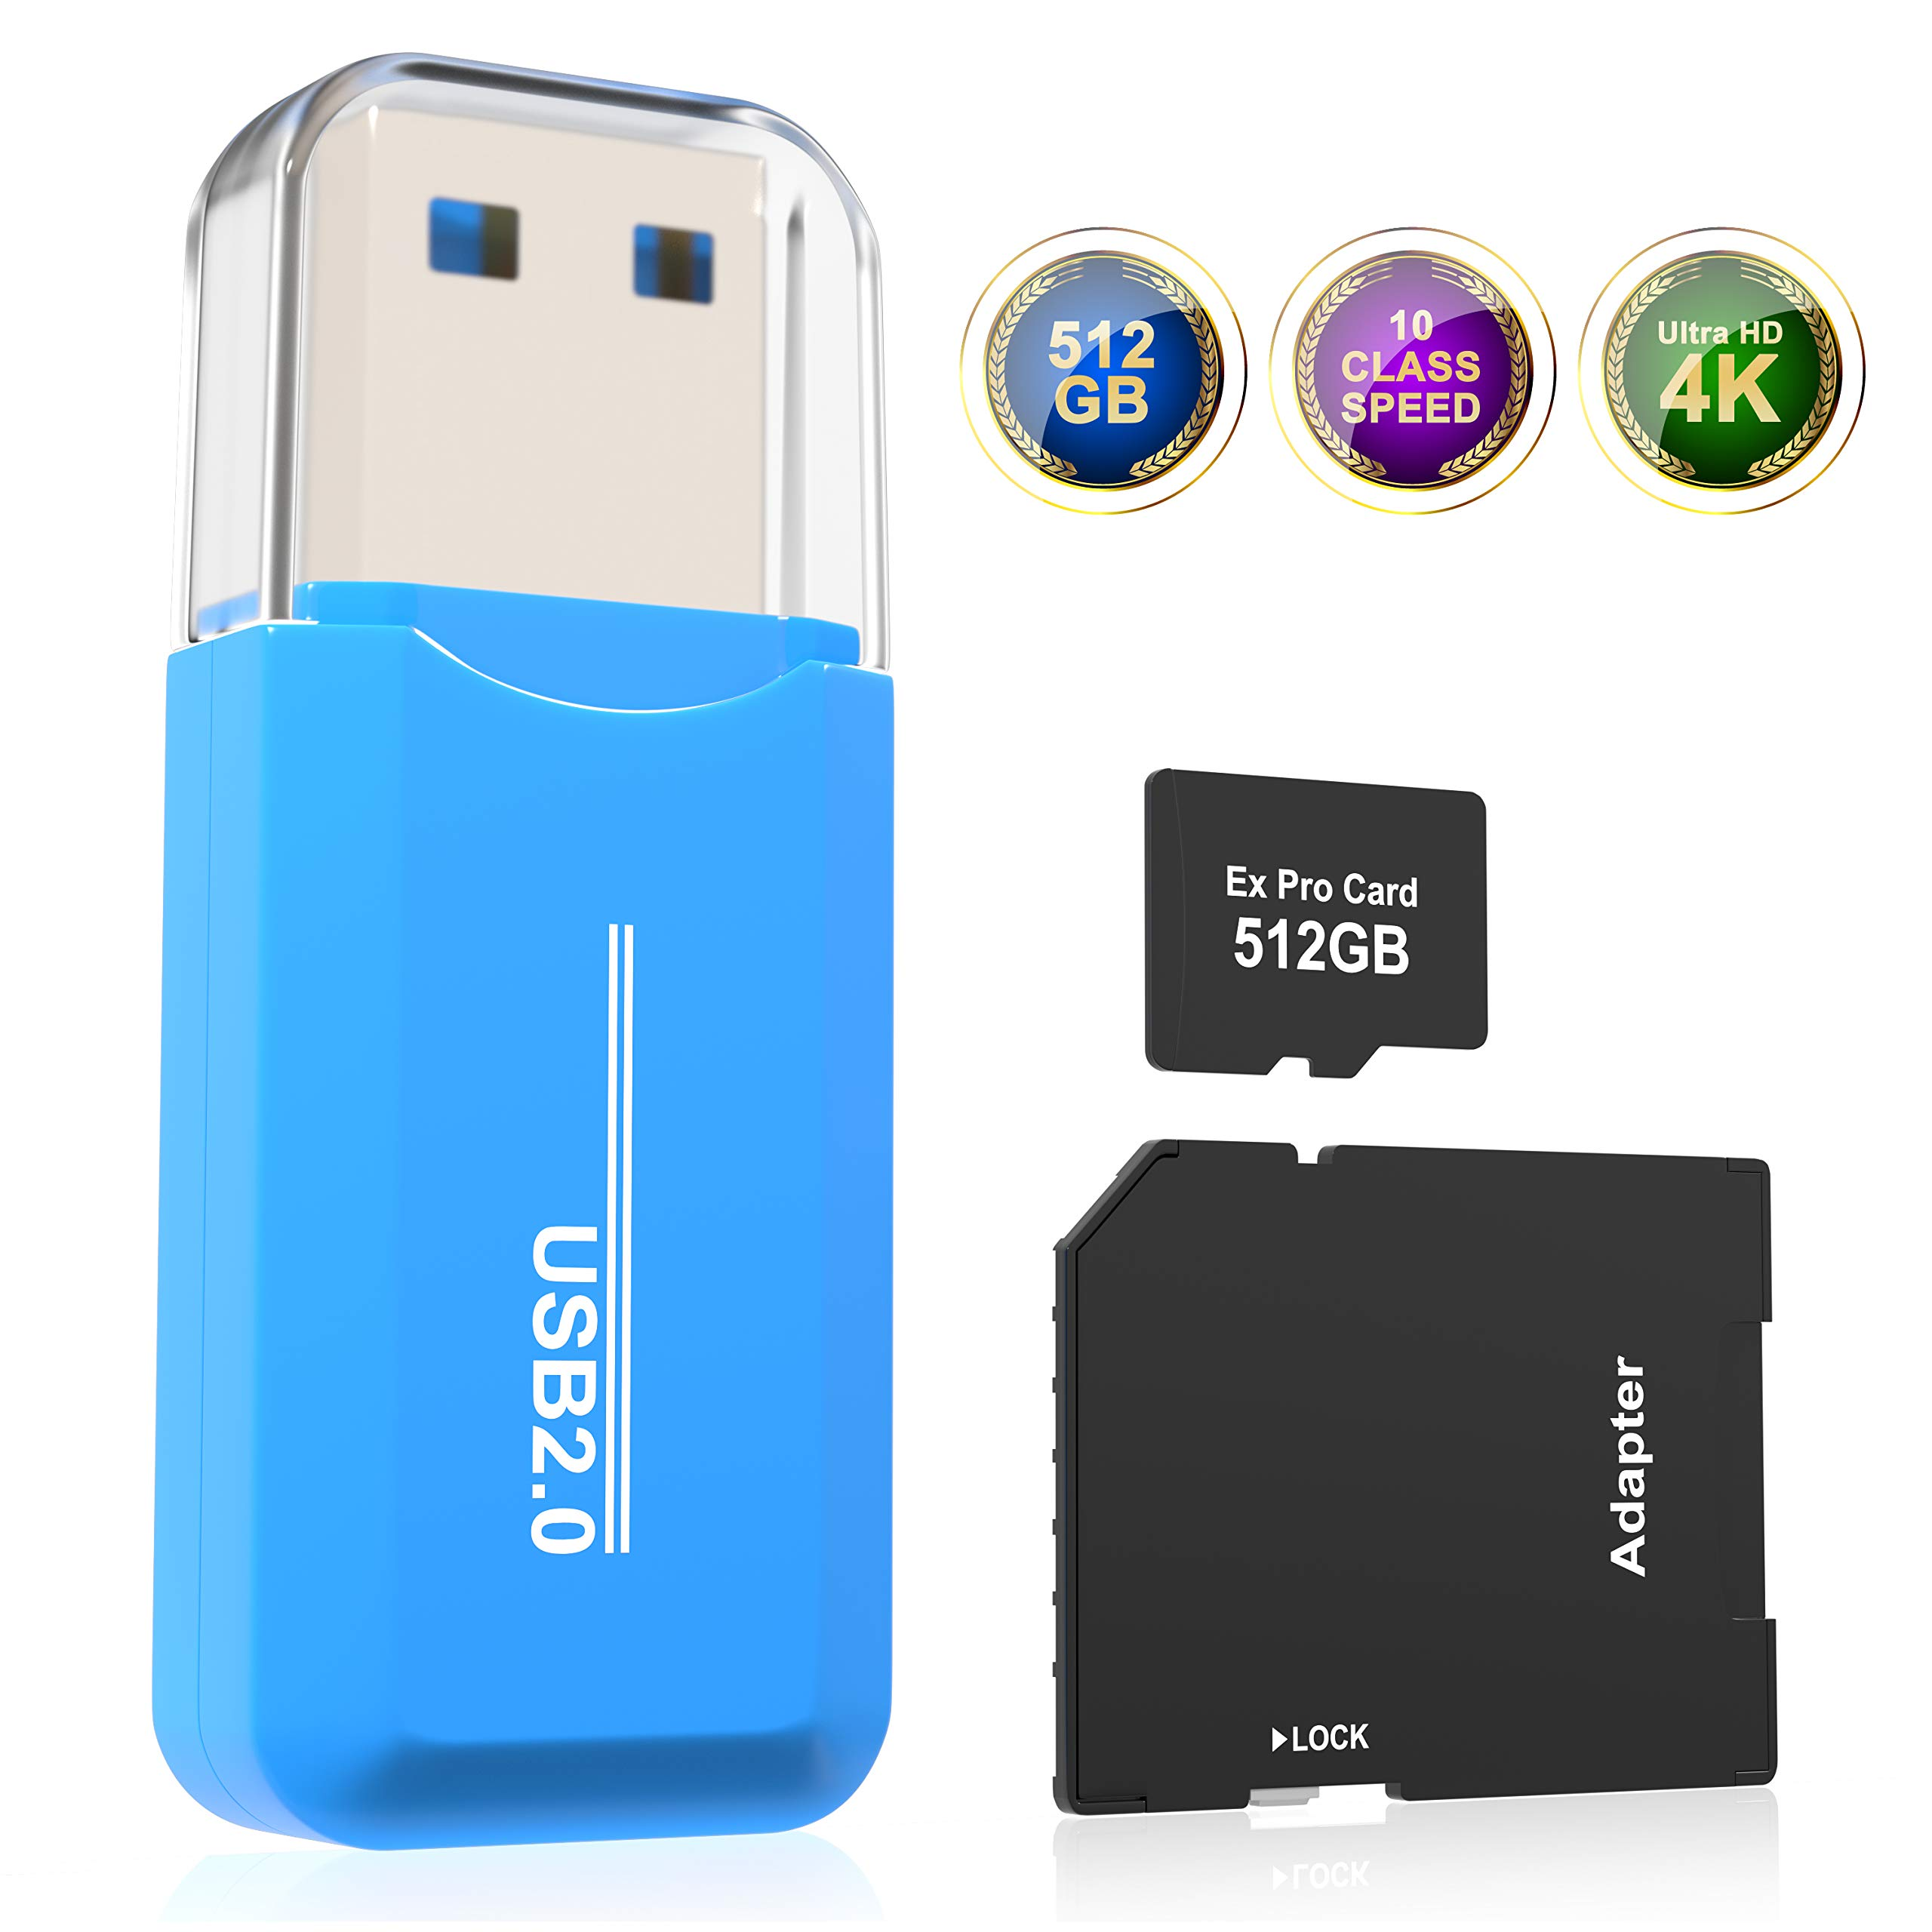 Memory Card Micro Speed Card 512GB sd Card High Class 10 TF Card with Adapter SD SDXC Card for Phone sd Card Camera MP3 Memory Card Flash 512 GB by Ex Card